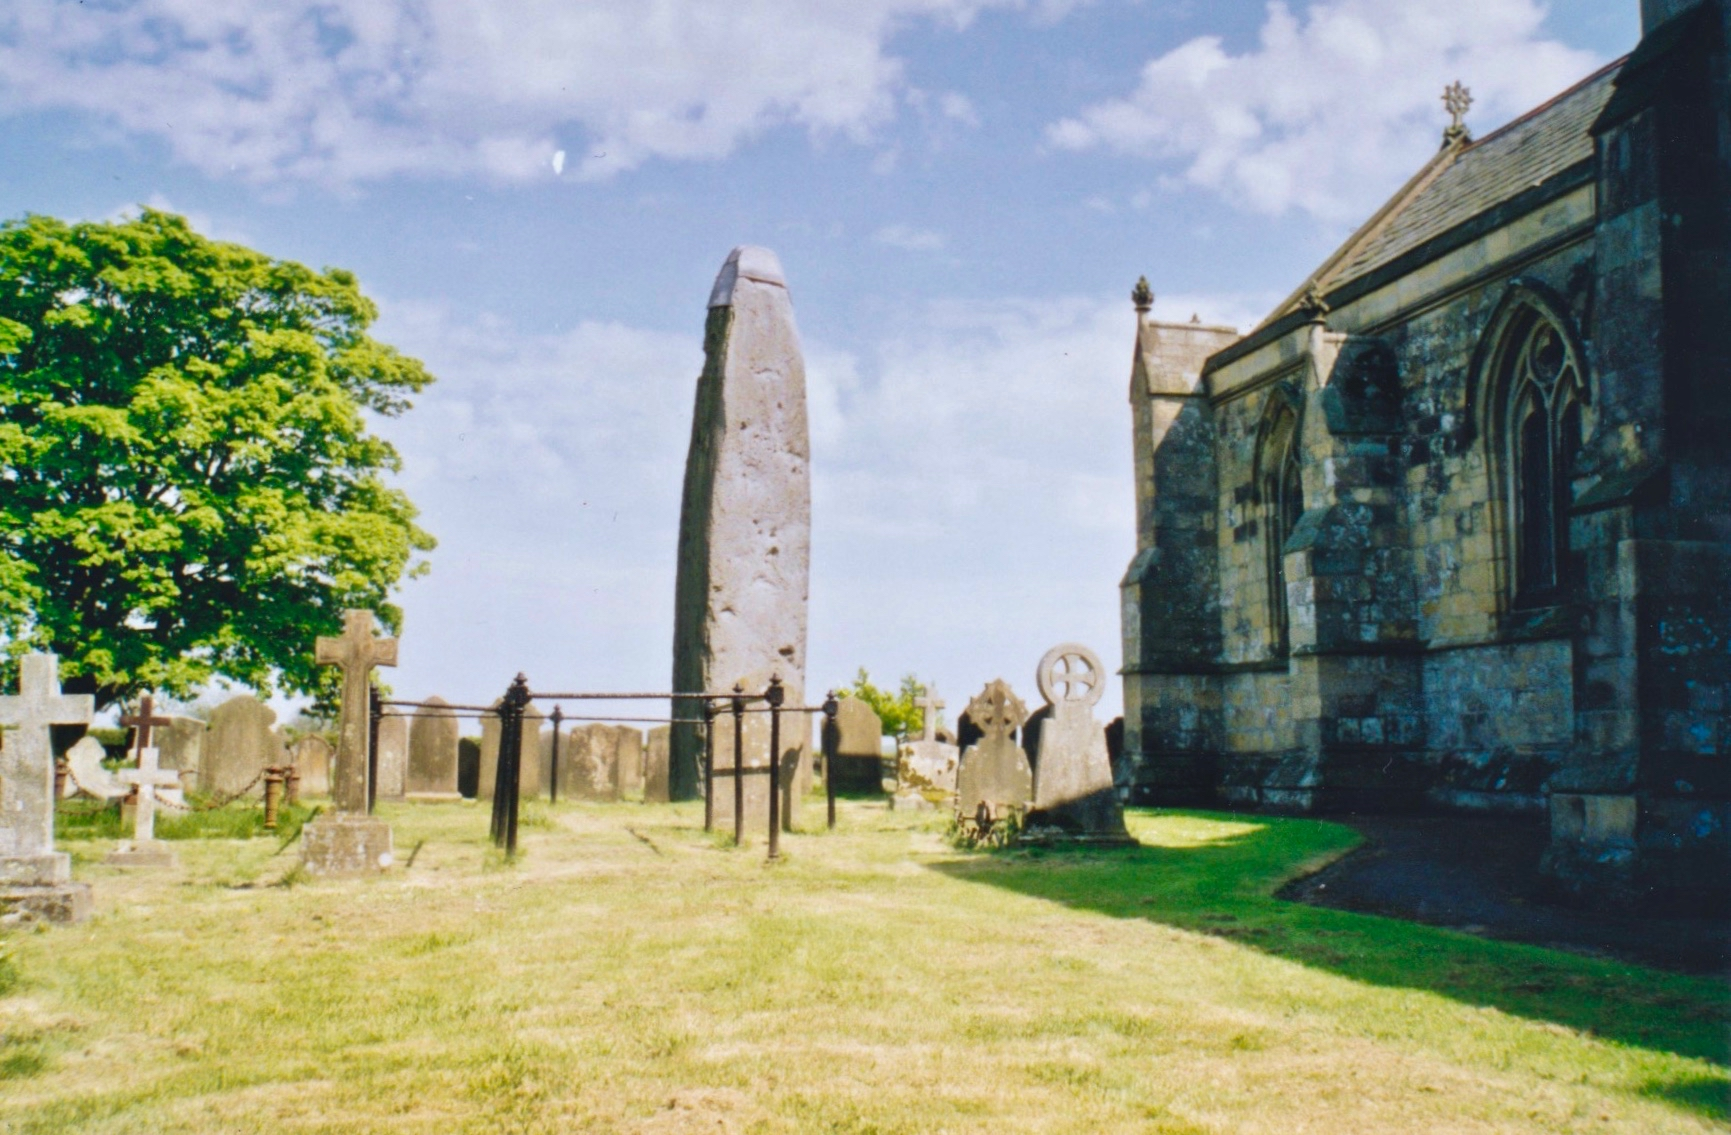 The Rudston Monolith at over 7.6 metres (25 ft) is the tallest megalith (standing stone) in the United Kingdom.